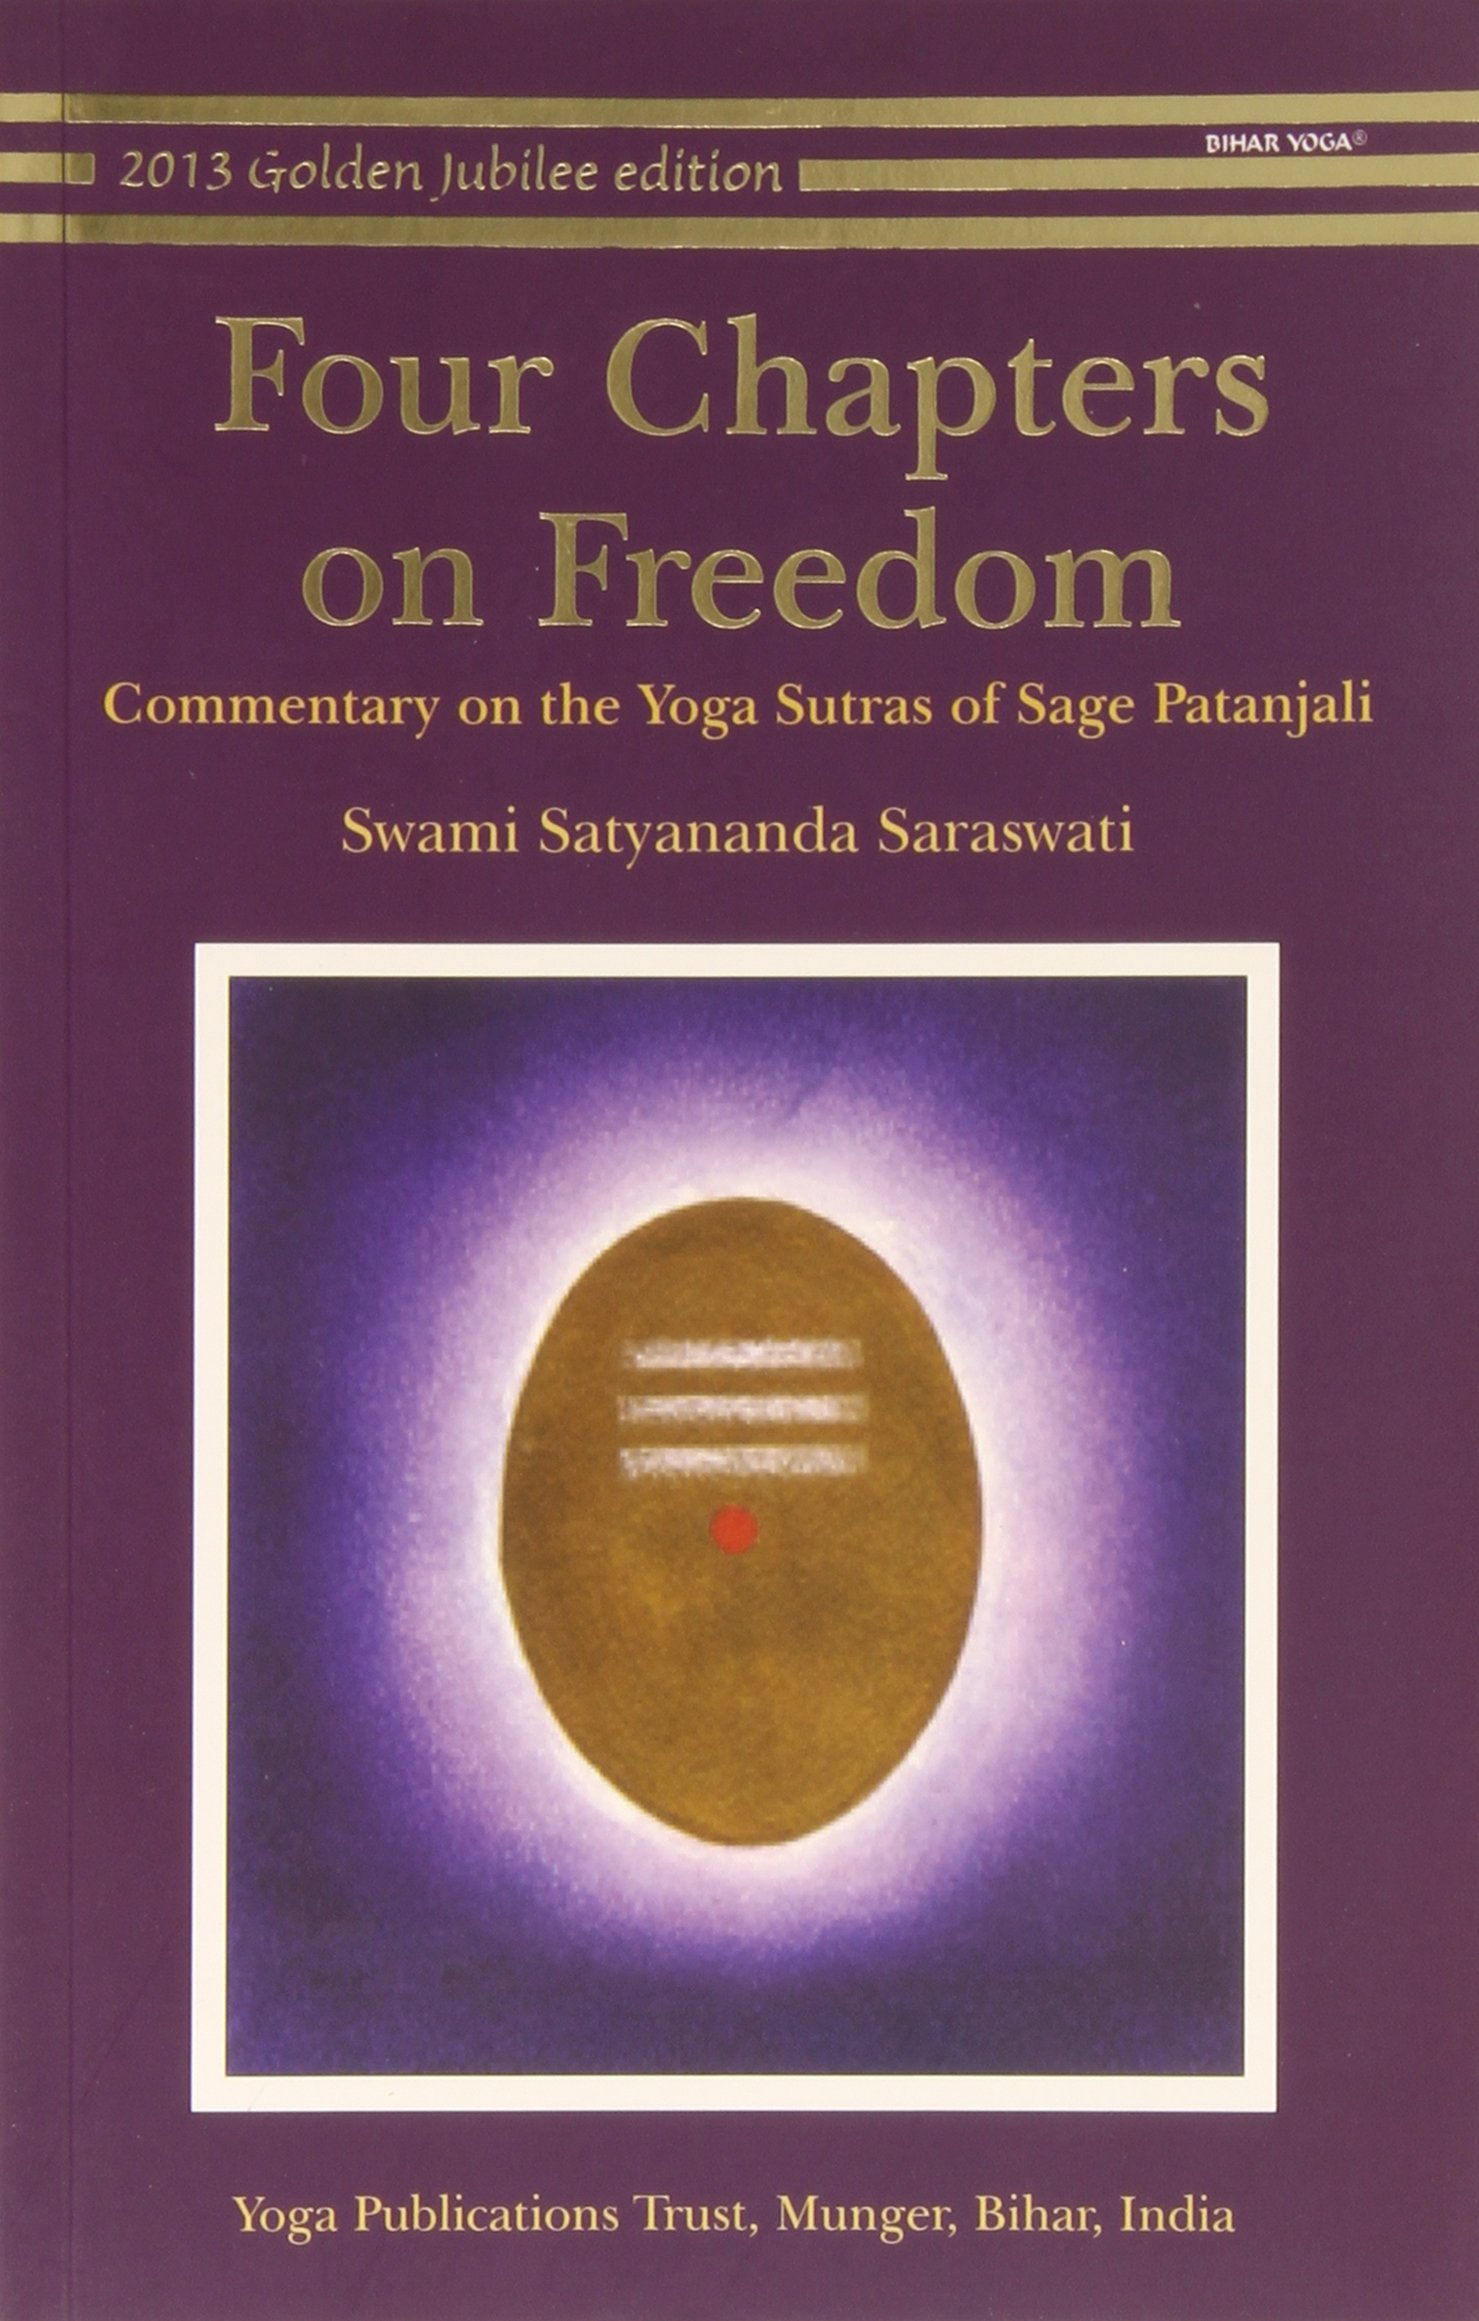 the yoga sutras of patanjali commentary on raja by sri